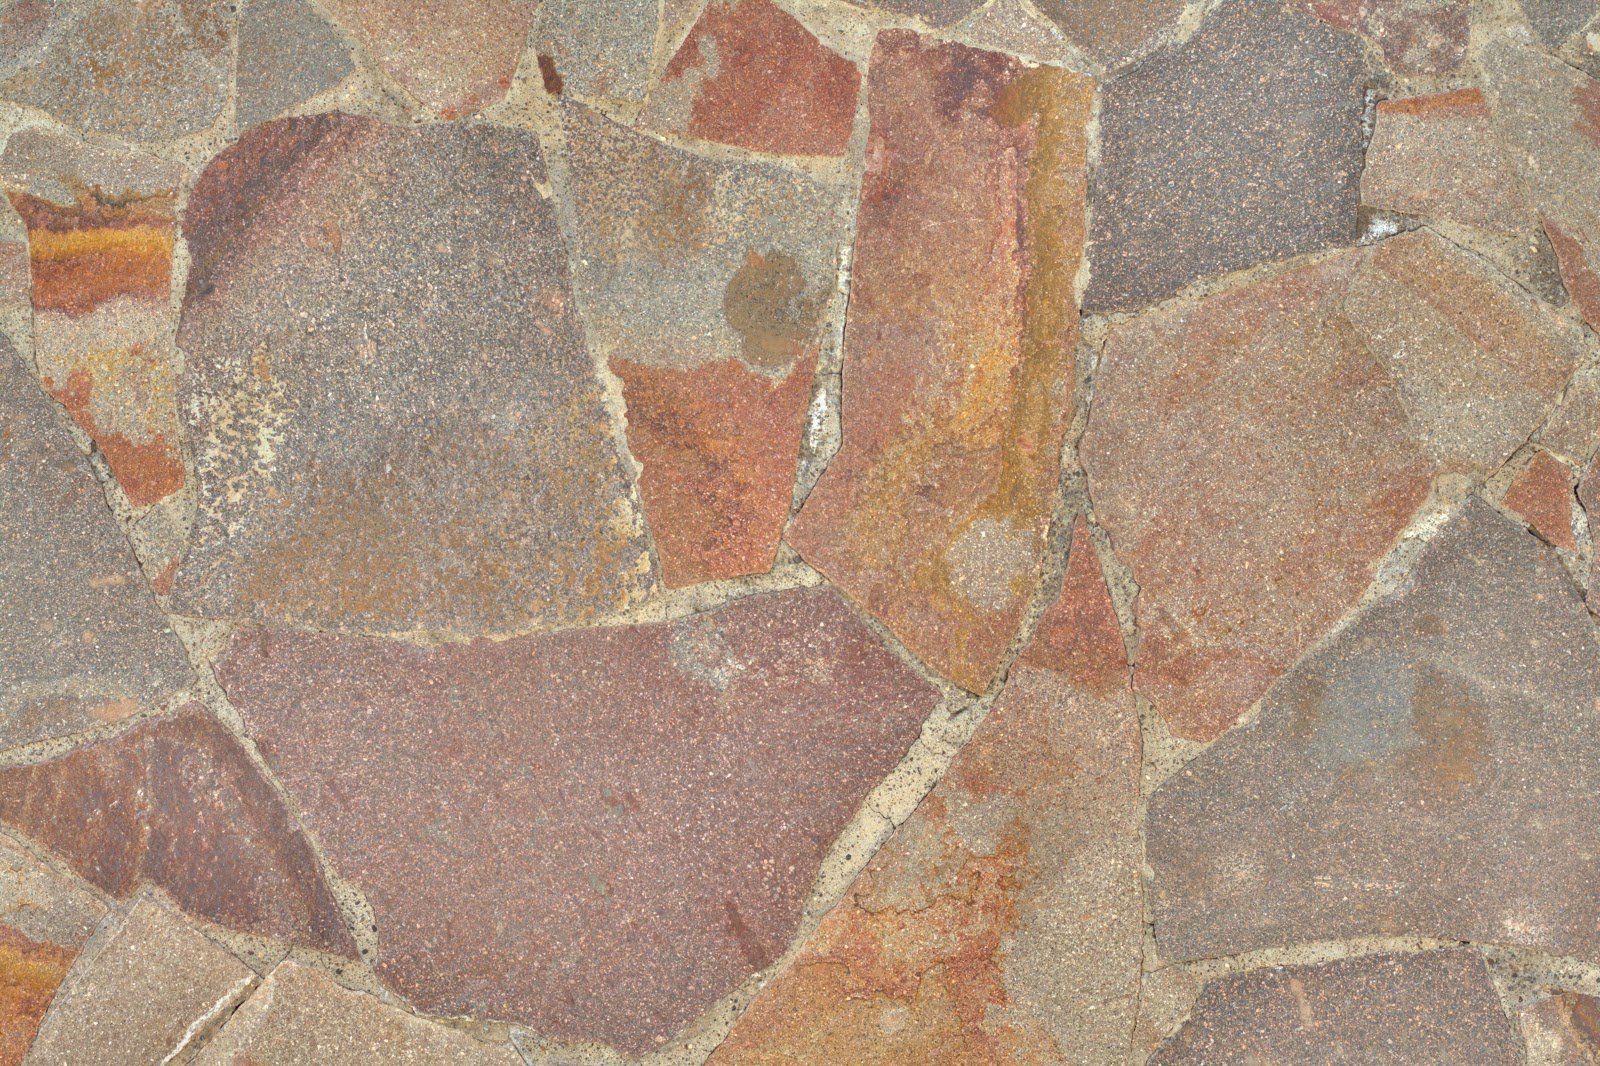 Stone Large Coloured Floor Tiles Texture 4770x3178 High Resolution Seamless Textures